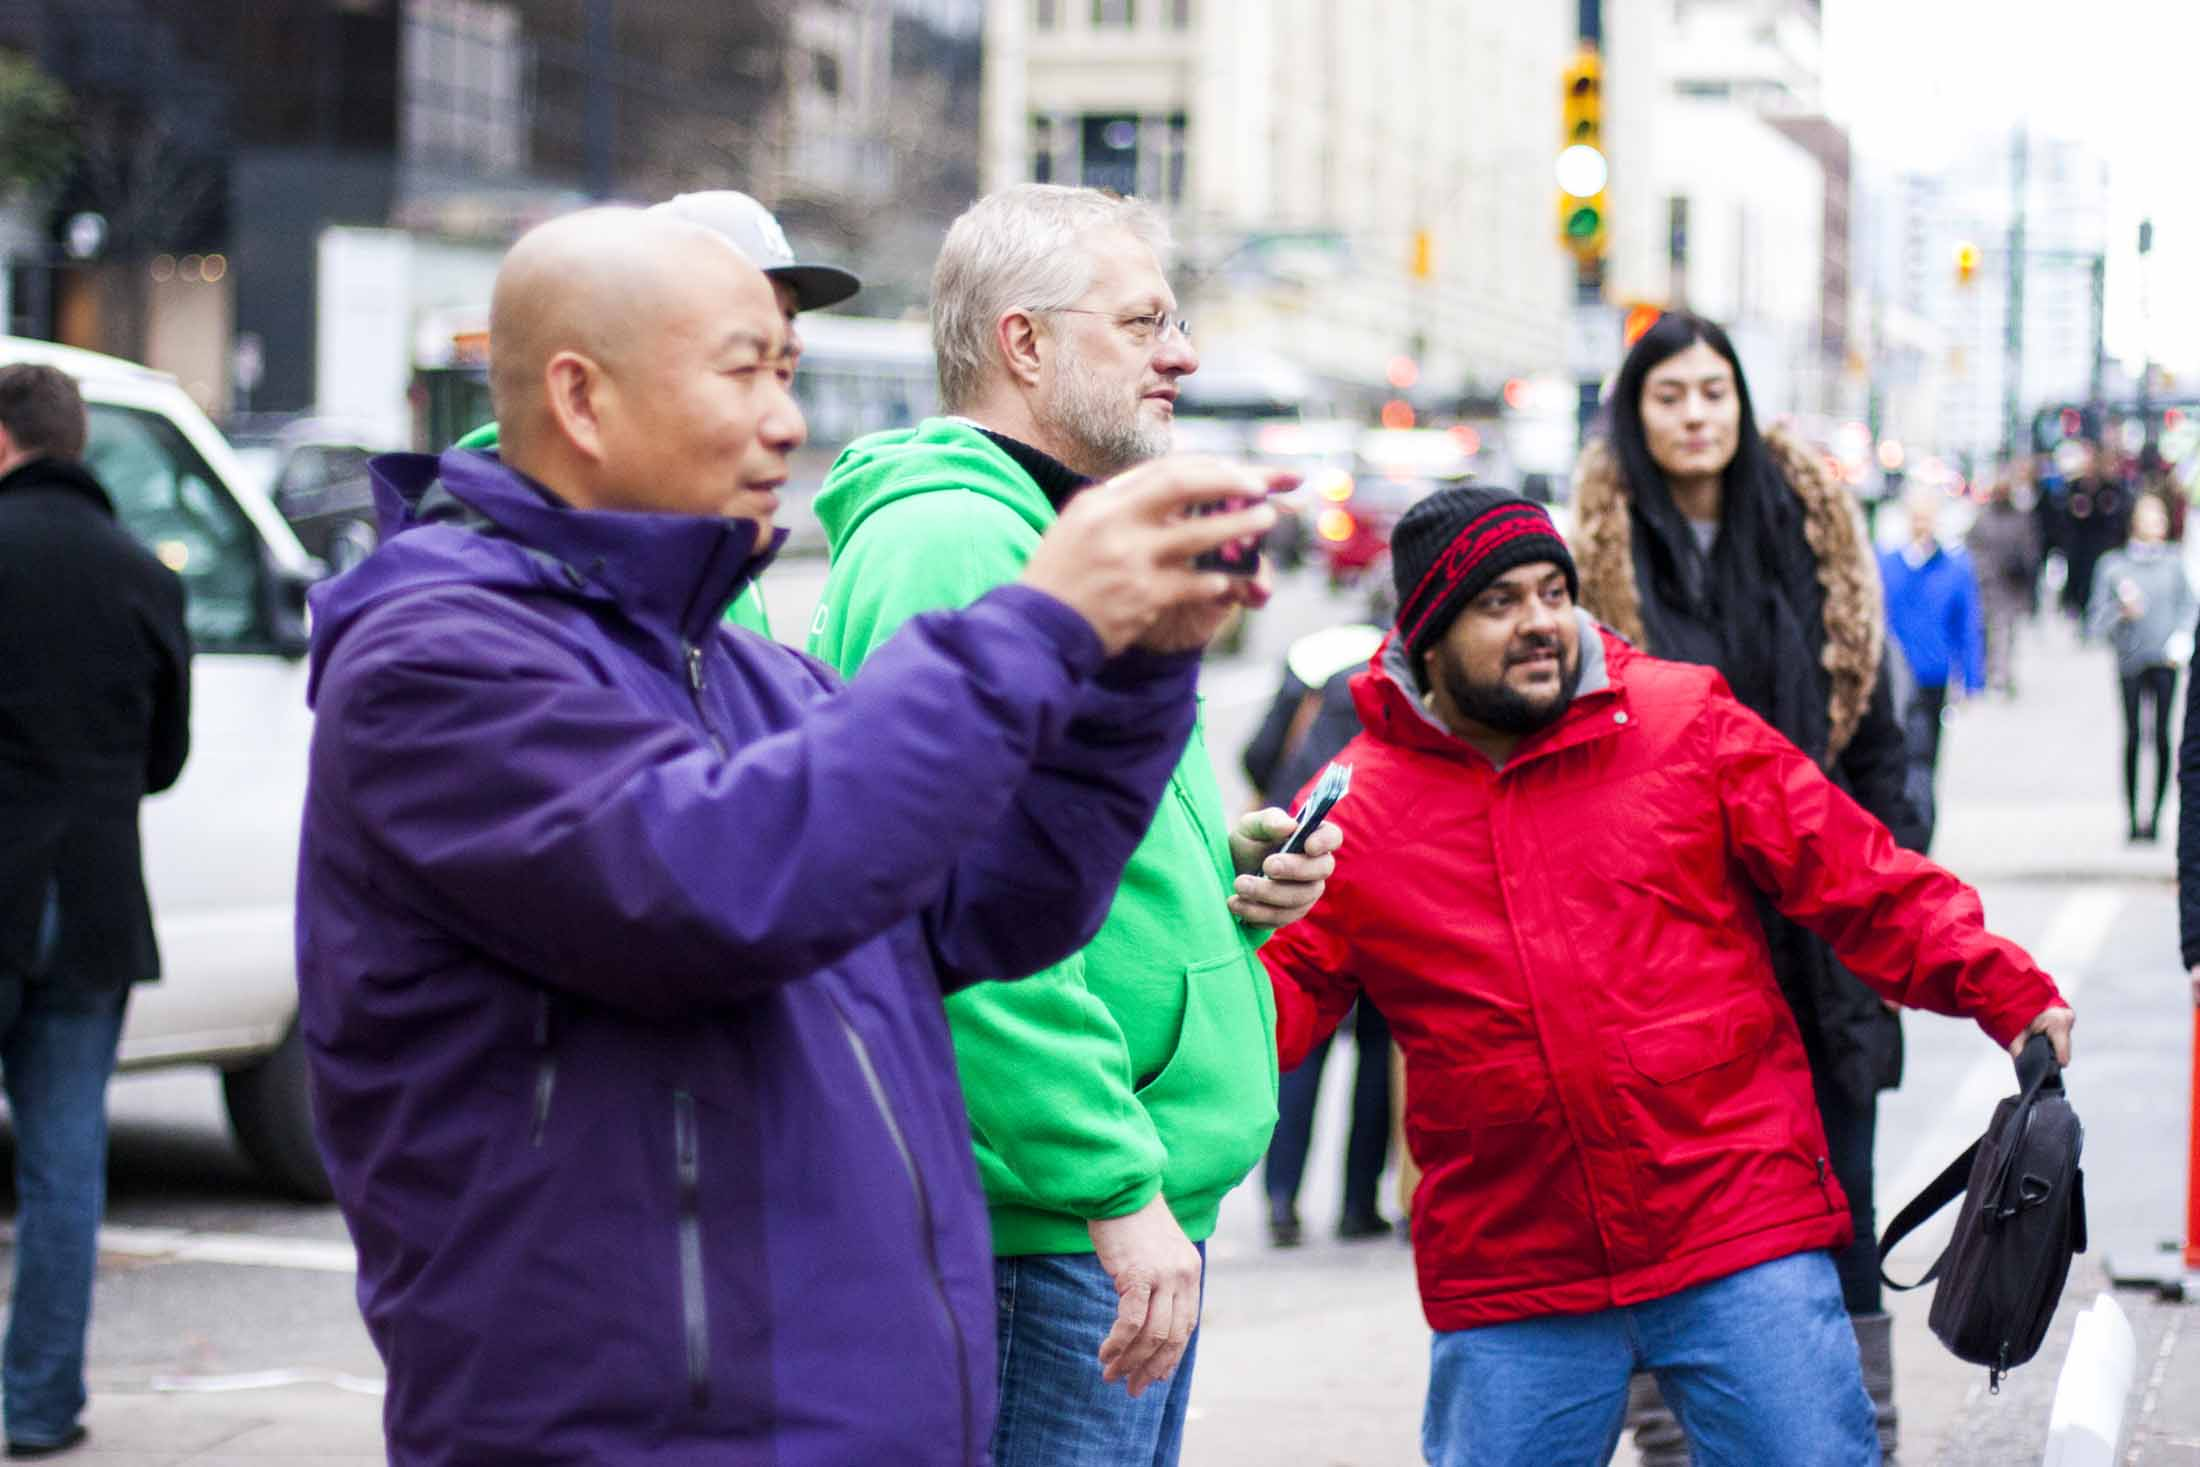 A man in bright red jacket throwing a ballon at the Credit Card costumed Grouplend CEO Kevin Sandhu — by Yagnyuk.